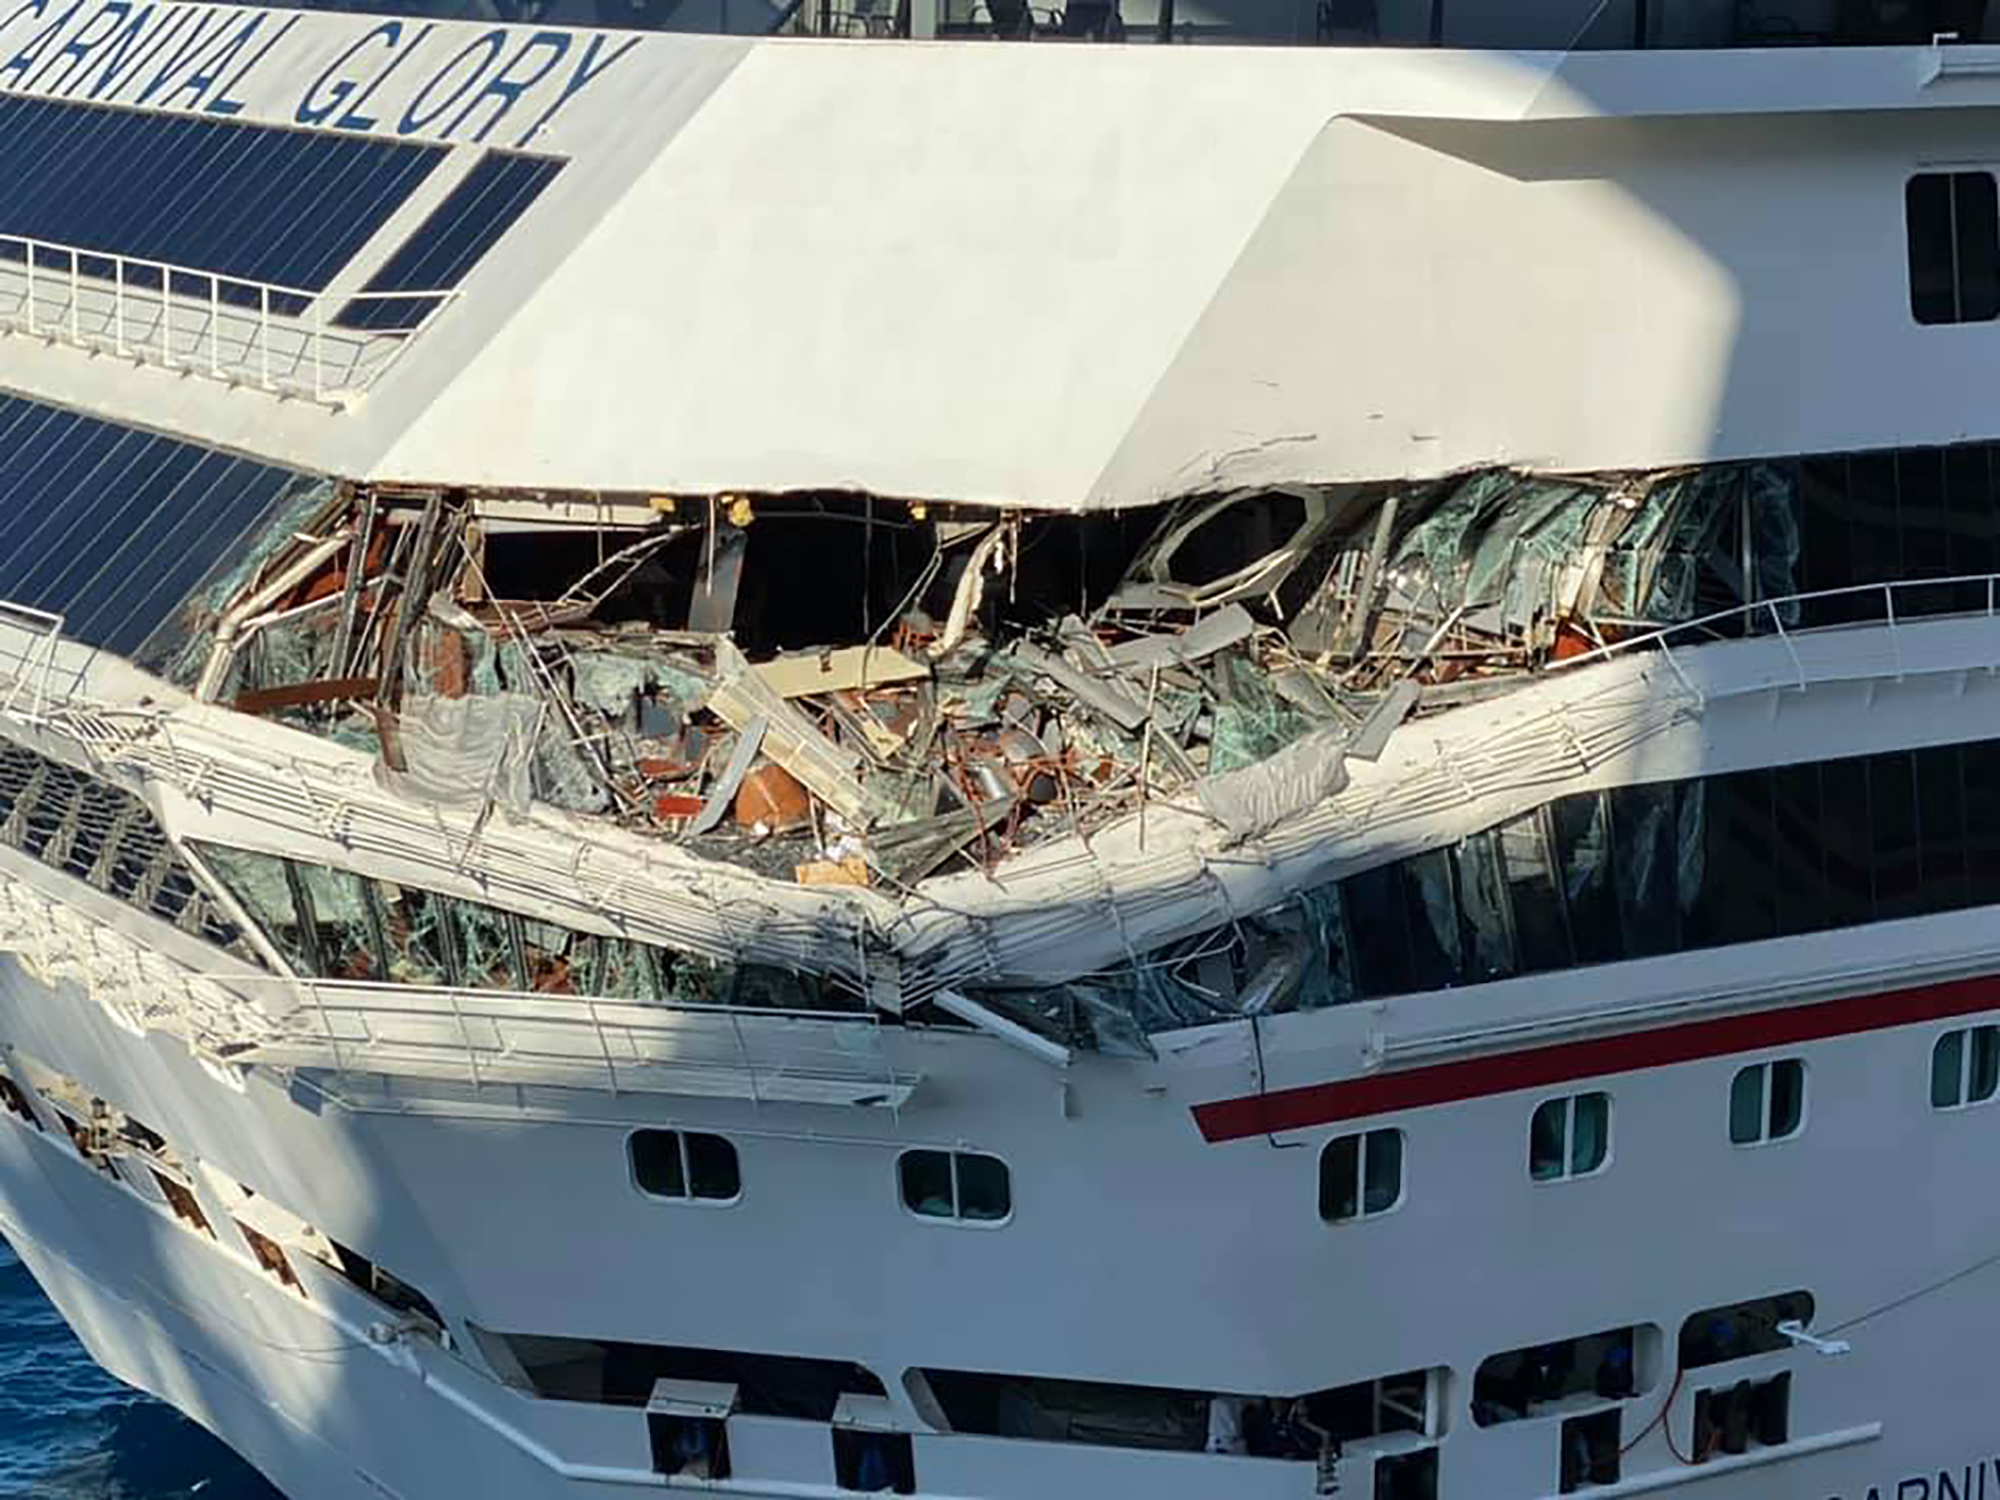 Watch two Carnival cruise ships collide - CNN Video